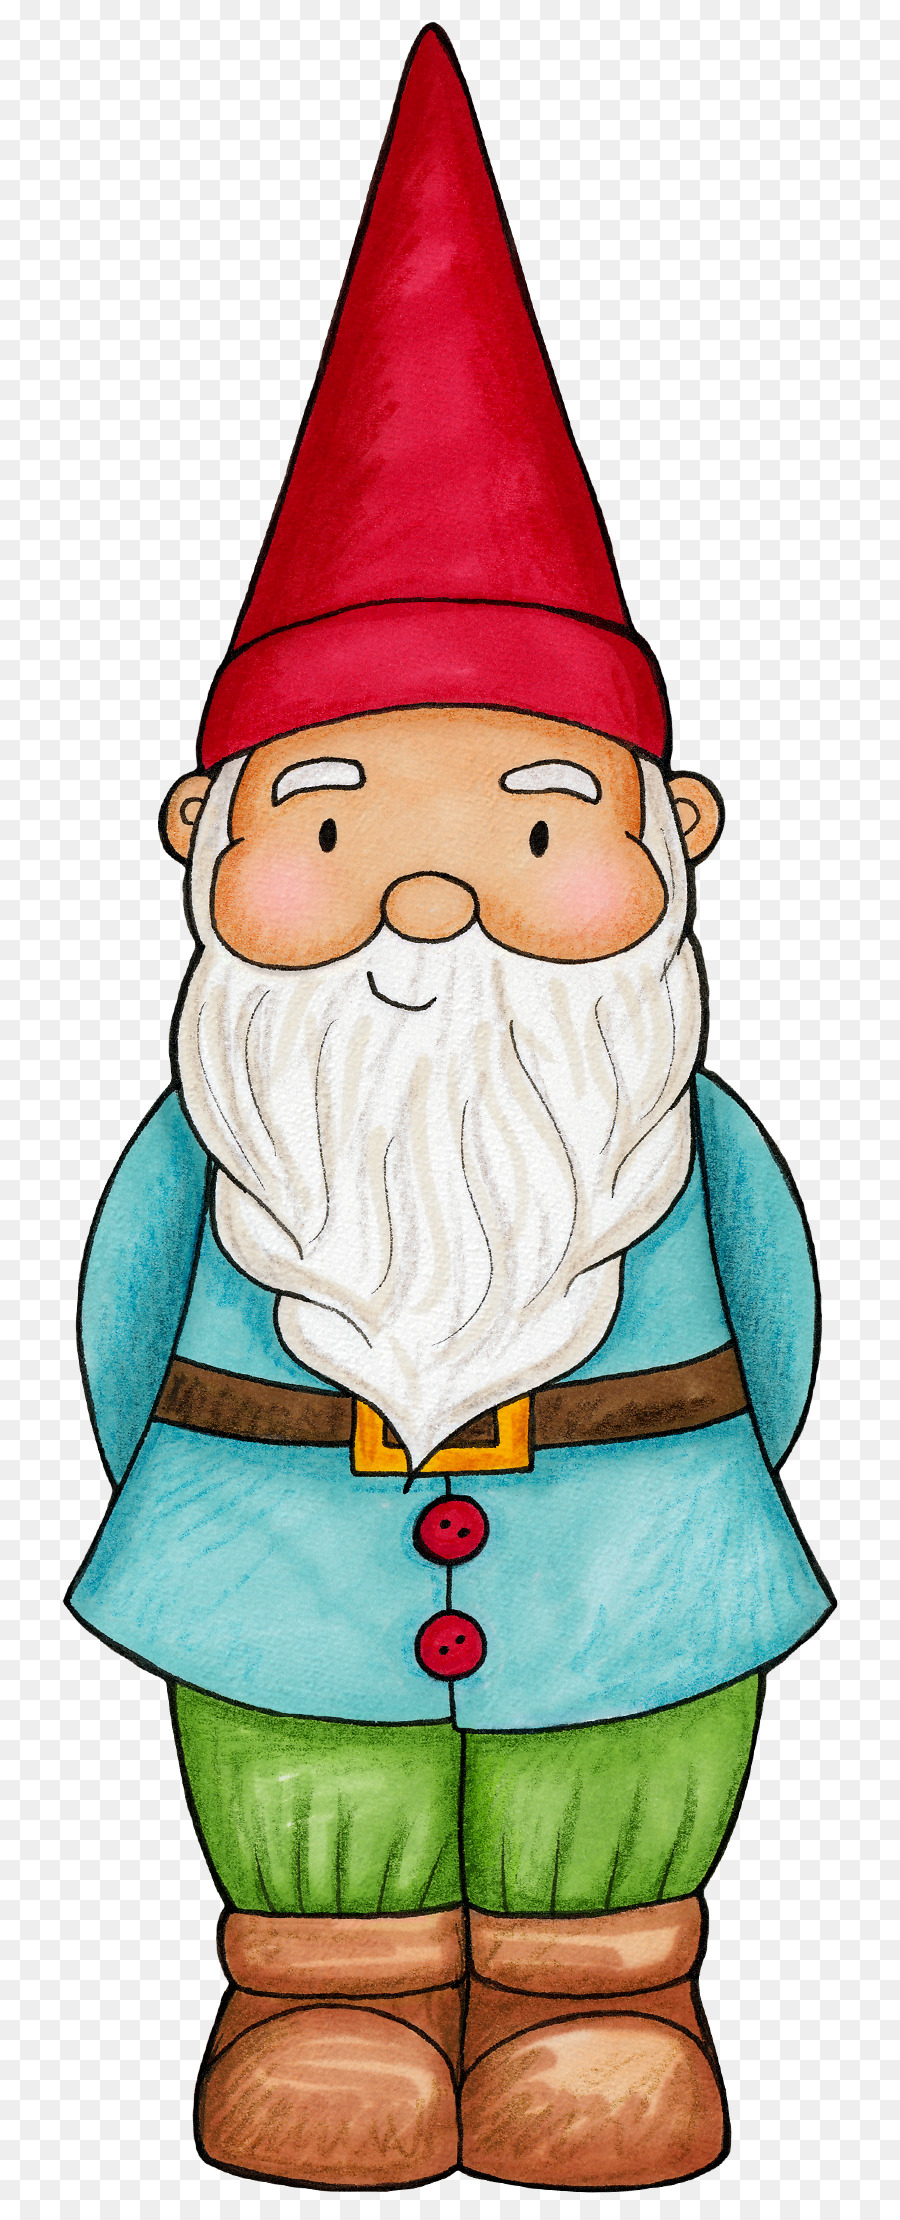 Angry bearded garden gnome clipart black and white png free library Gnome clipart vector, Gnome vector Transparent FREE for download on ... png free library